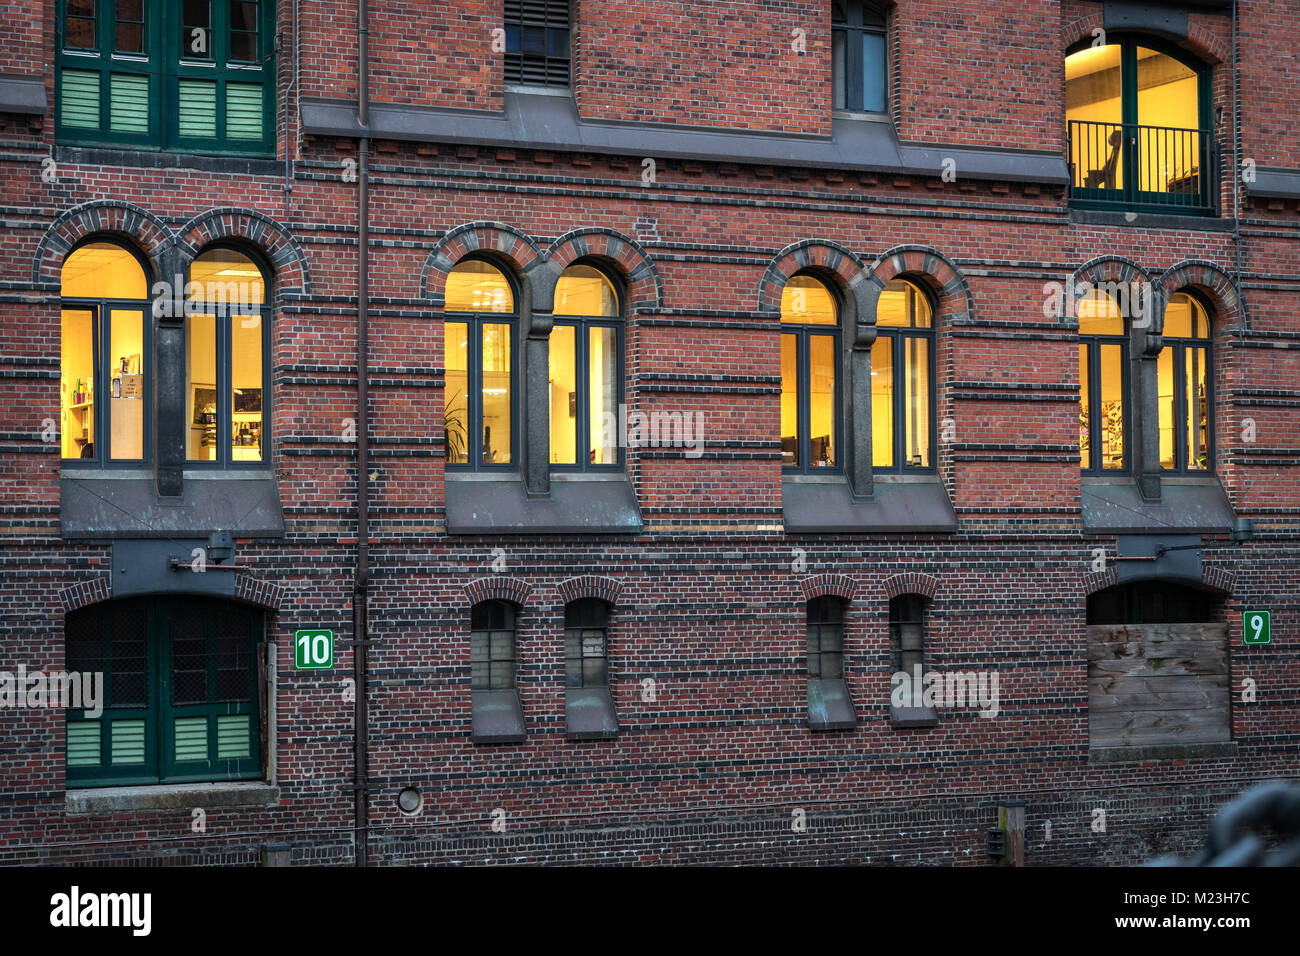 Detail of old Speicherstadt or warehouse in Hamburg, Germany - Stock Image